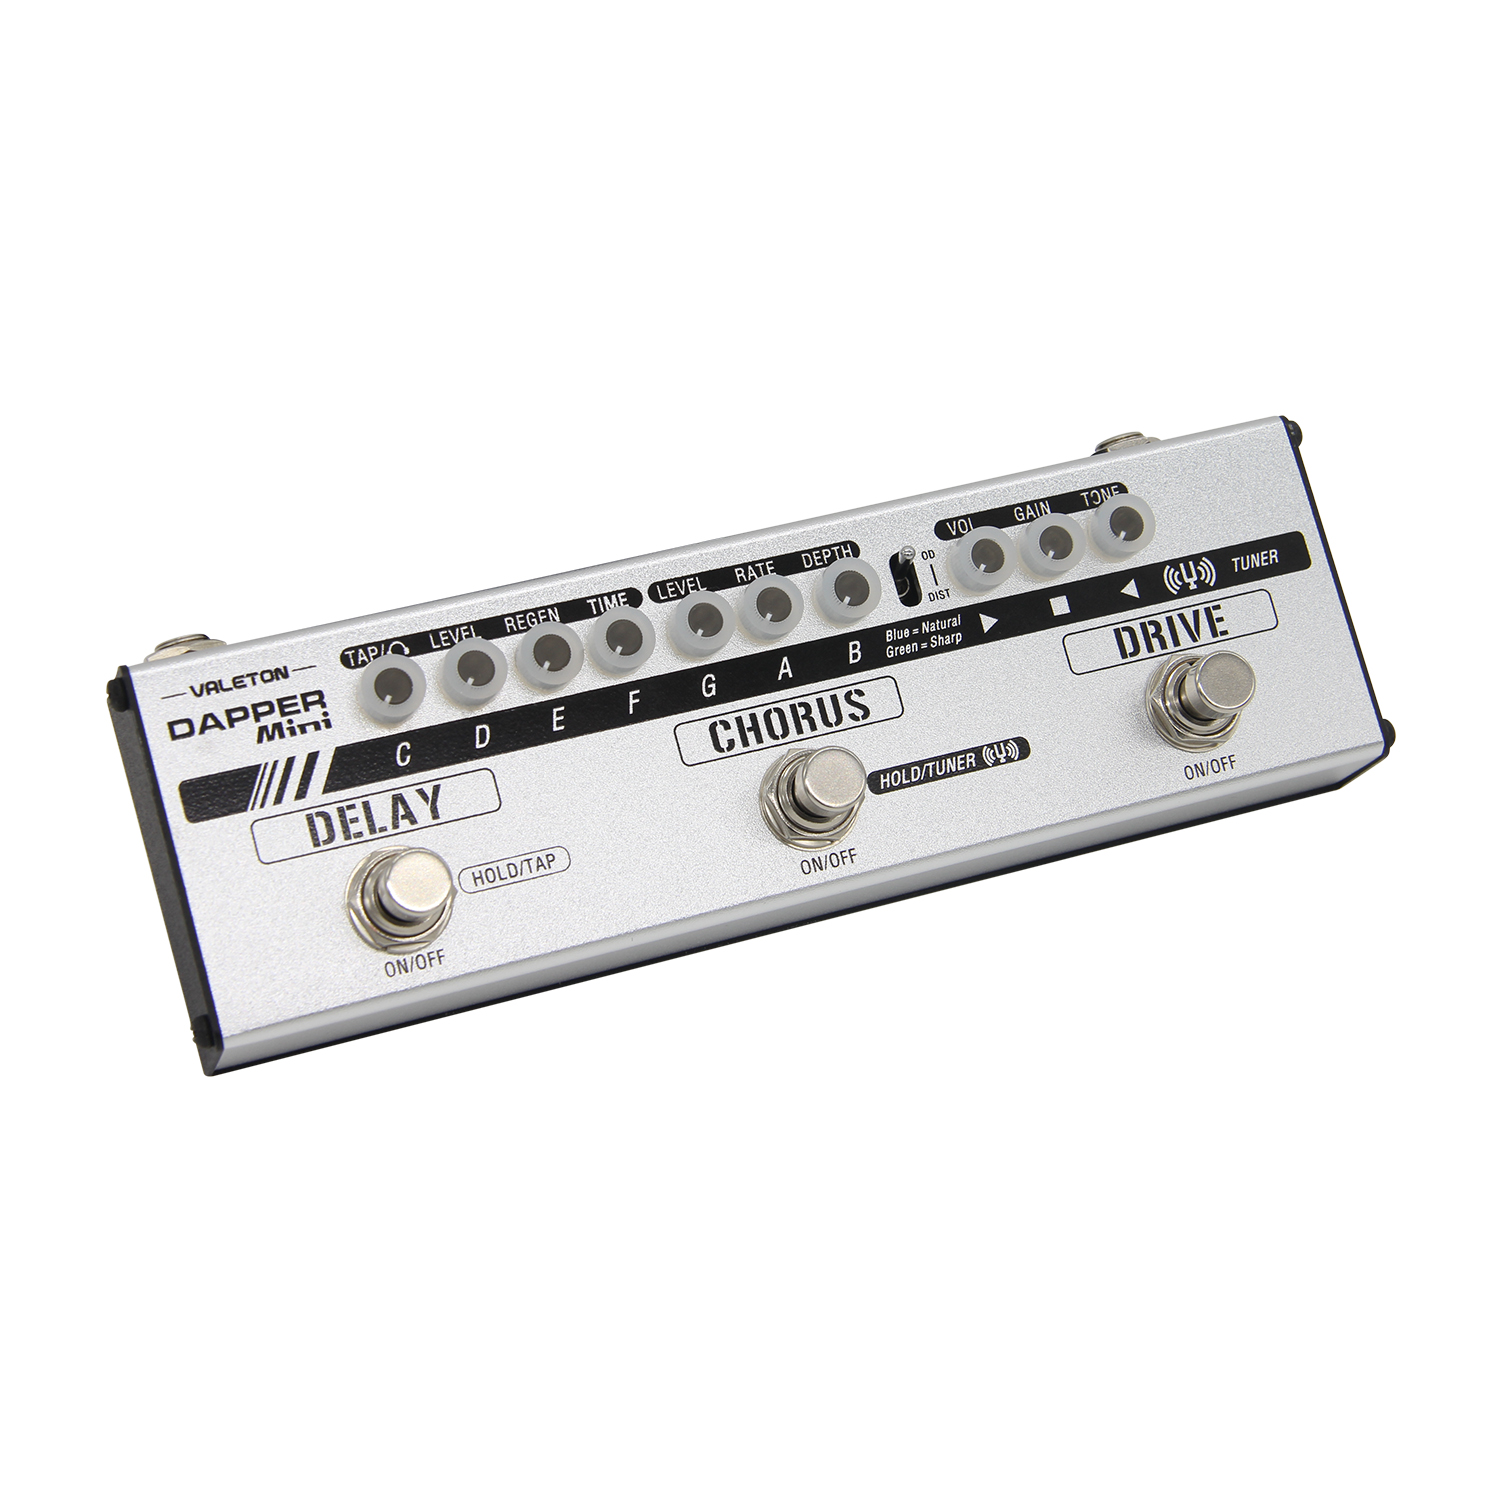 Valeton Dapper Mini Guitar Effect Pedal Tuner Drive Chorus Delay Phones All In One Effects Strip